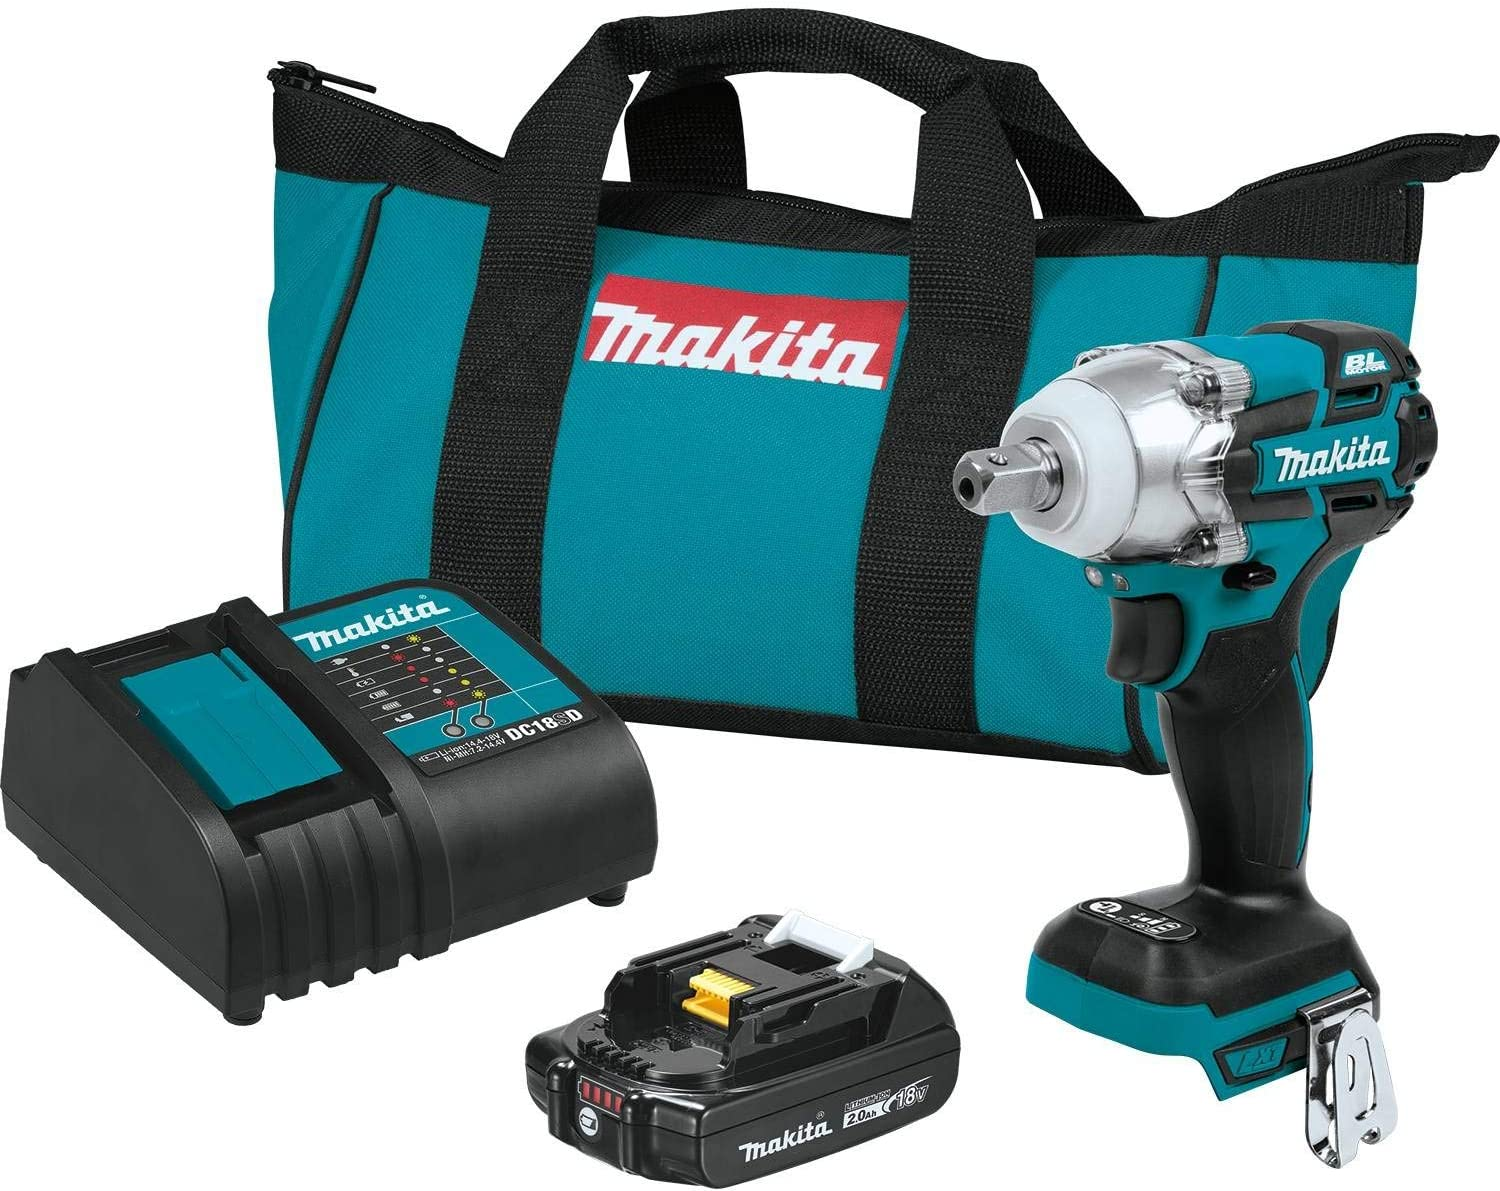 Makita XWT11SR1 18V LXT Lithium-Ion Compact Brushless Best Cordless Impact Wrench Kit